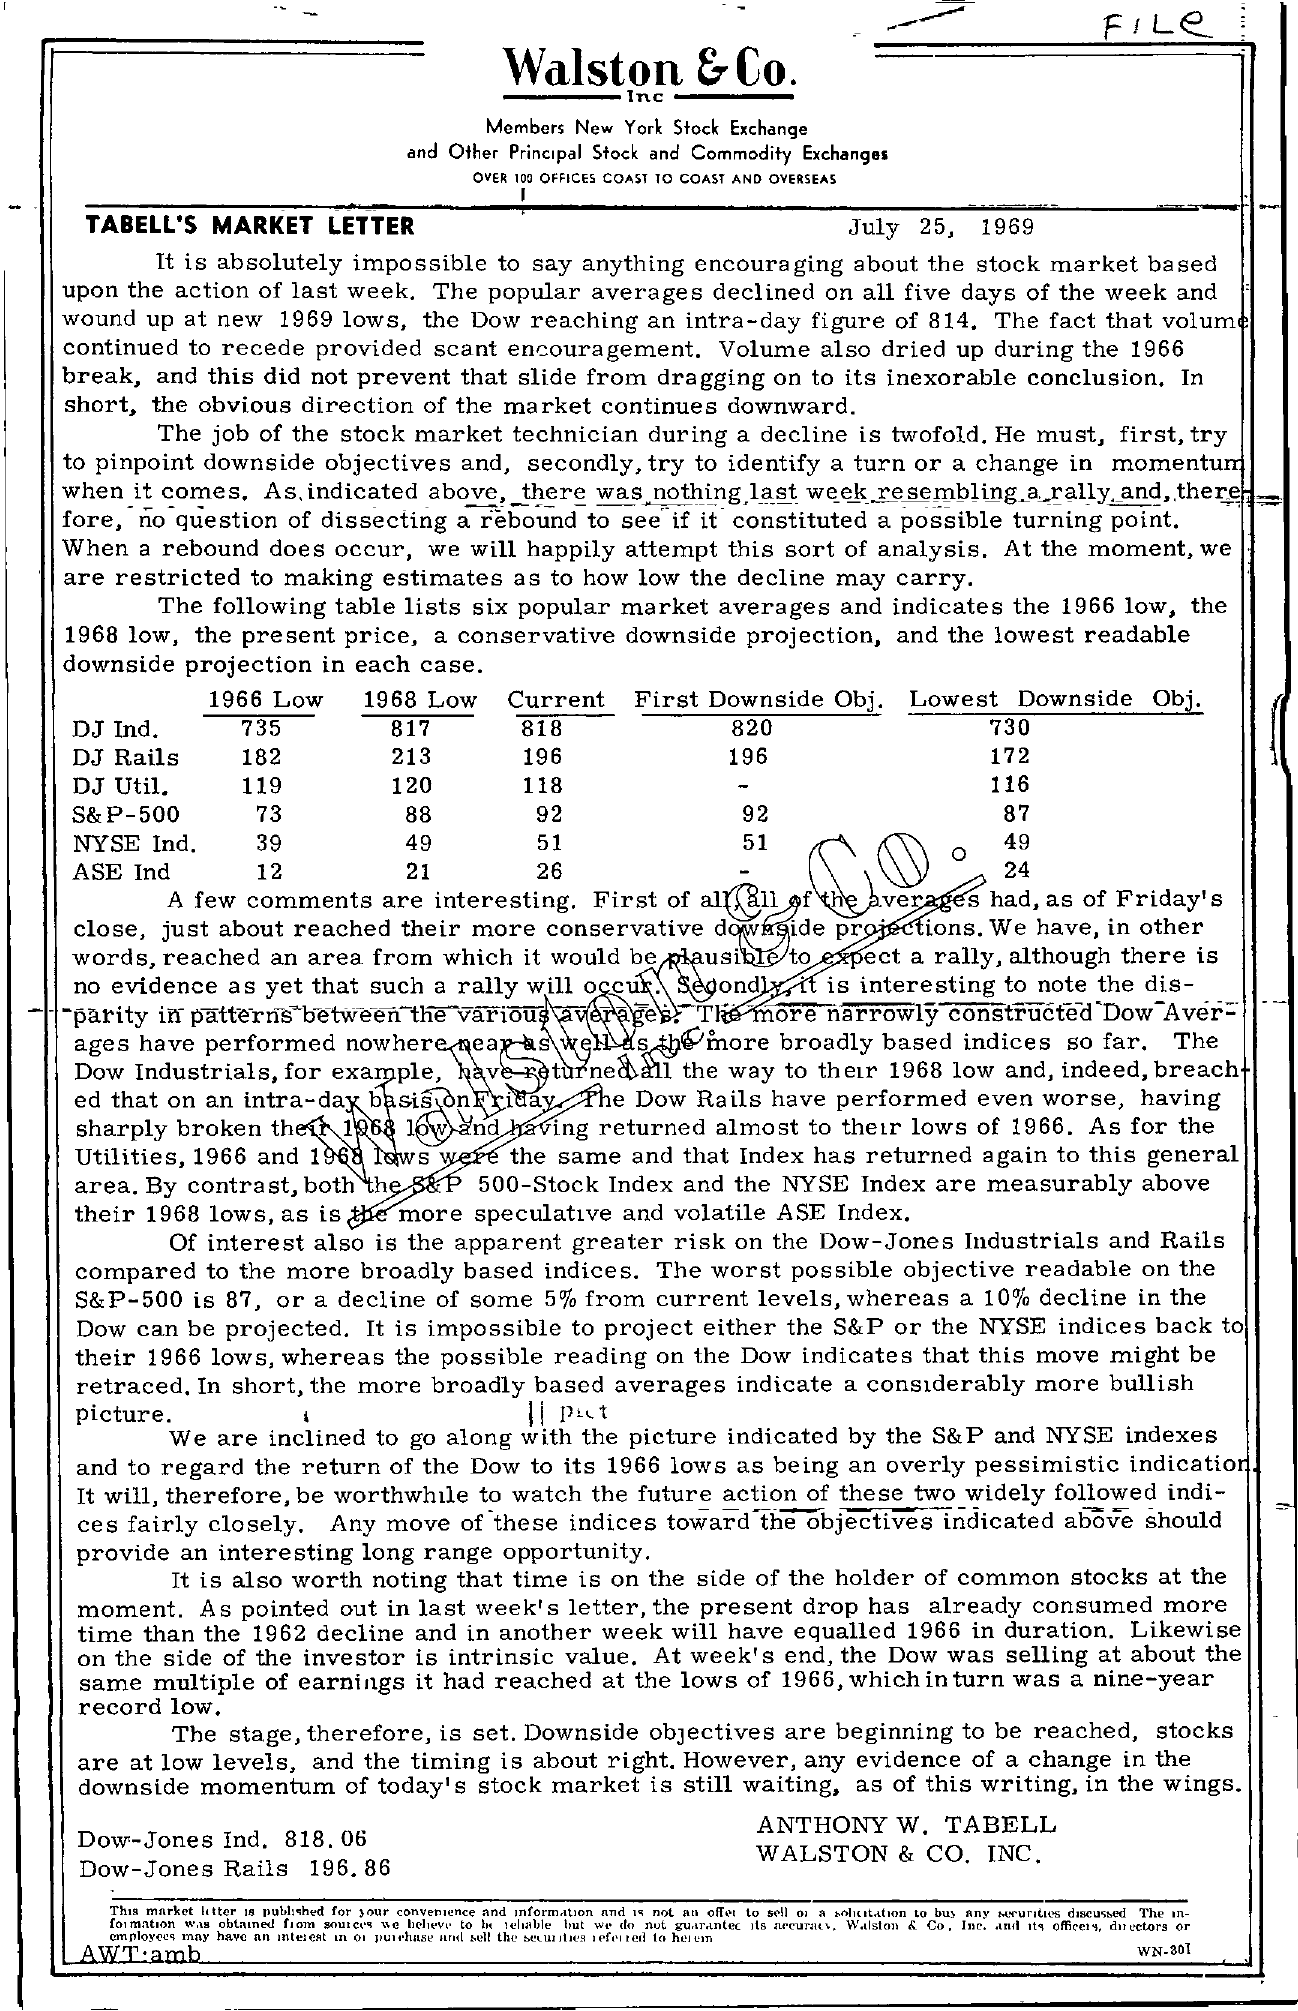 Tabell's Market Letter - July 25, 1969